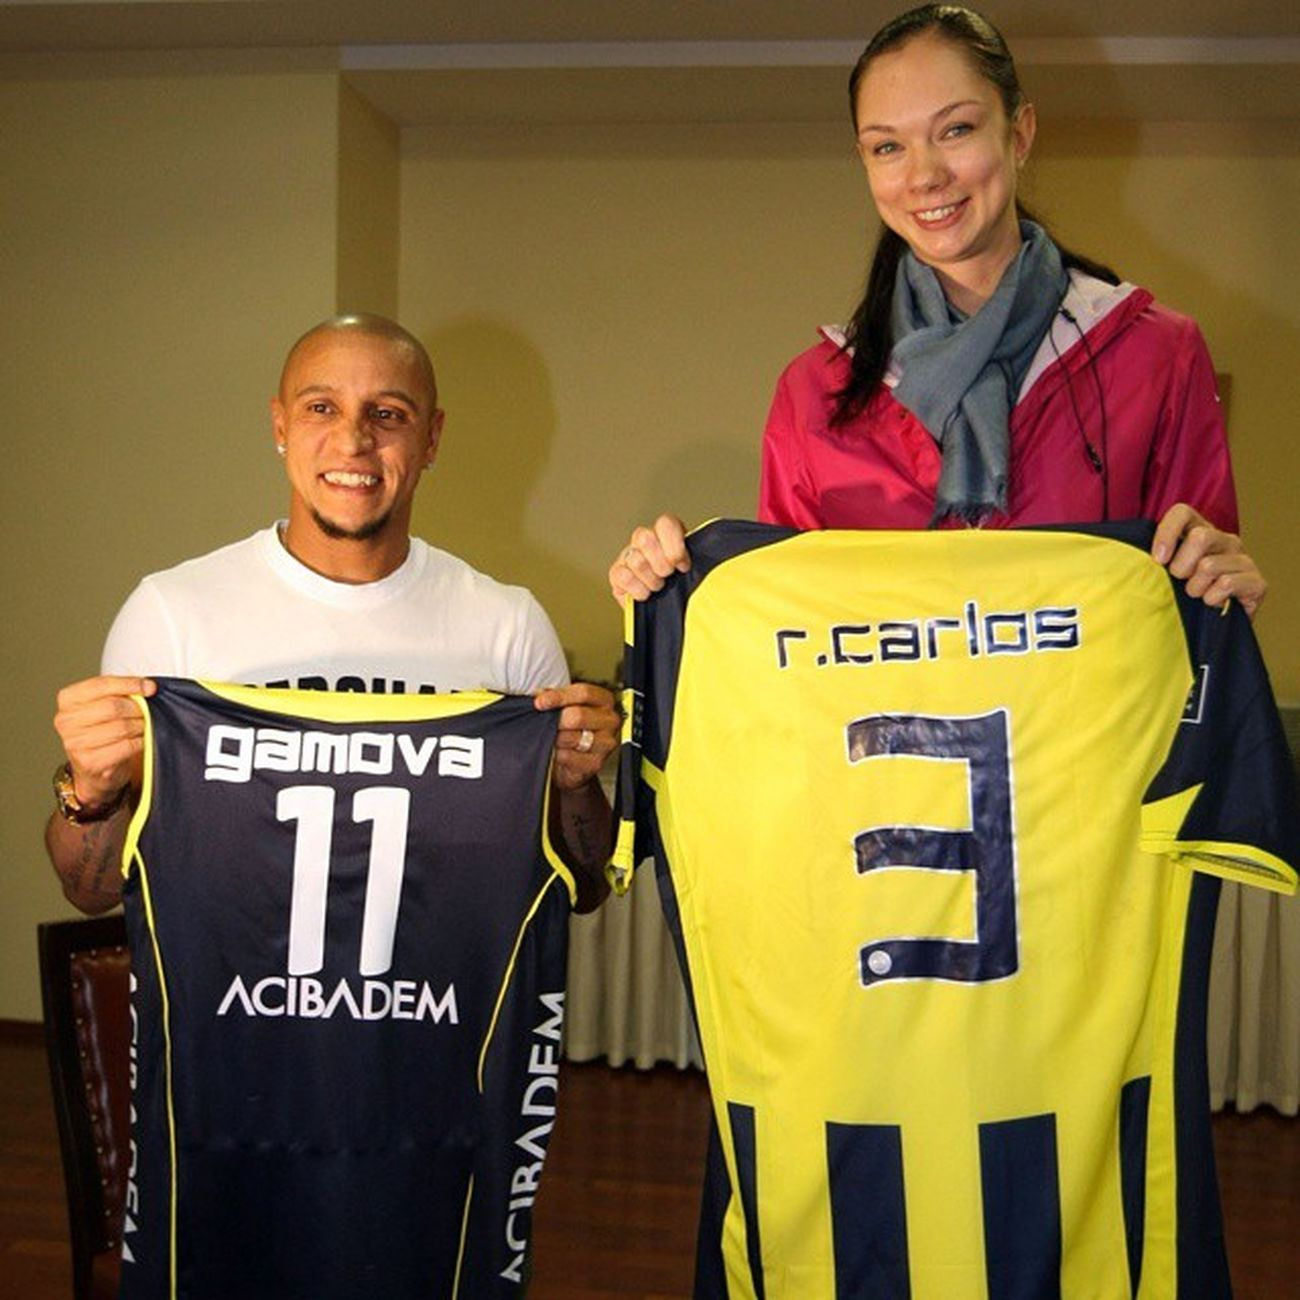 Once upon a time Fenerbahce  Roberto Carlos (168 cm), Brazil with Ekaterina Gamova (202 cm), Russia at Fenerbahçe, Turkey (2009) Fenerbahce  FenerbahceGrundig RobertoCarlos ekaterinagamova gamova brasil football russianvolley russia volleyball voleybol sport nostalji nostalgia istanbul sarikanarya sarilacivert sarimelekler